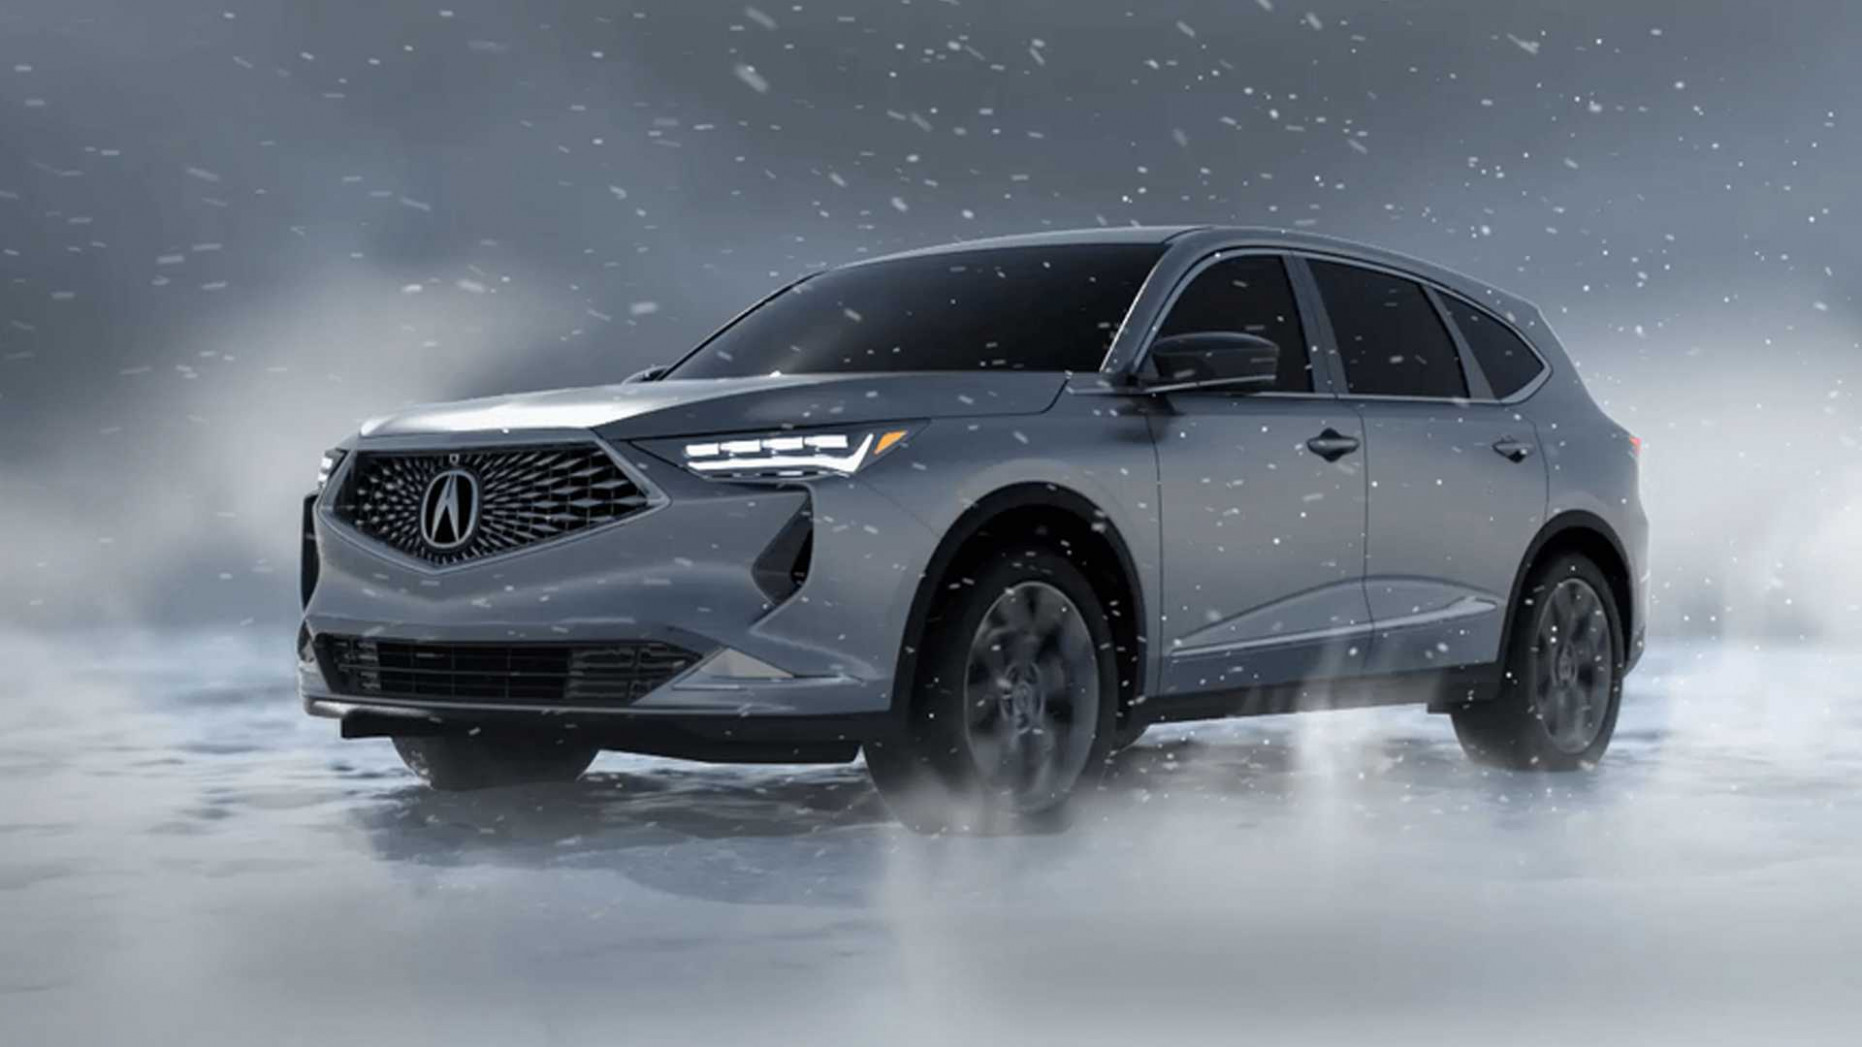 Price and Review When Does Acura Release 2022 Models